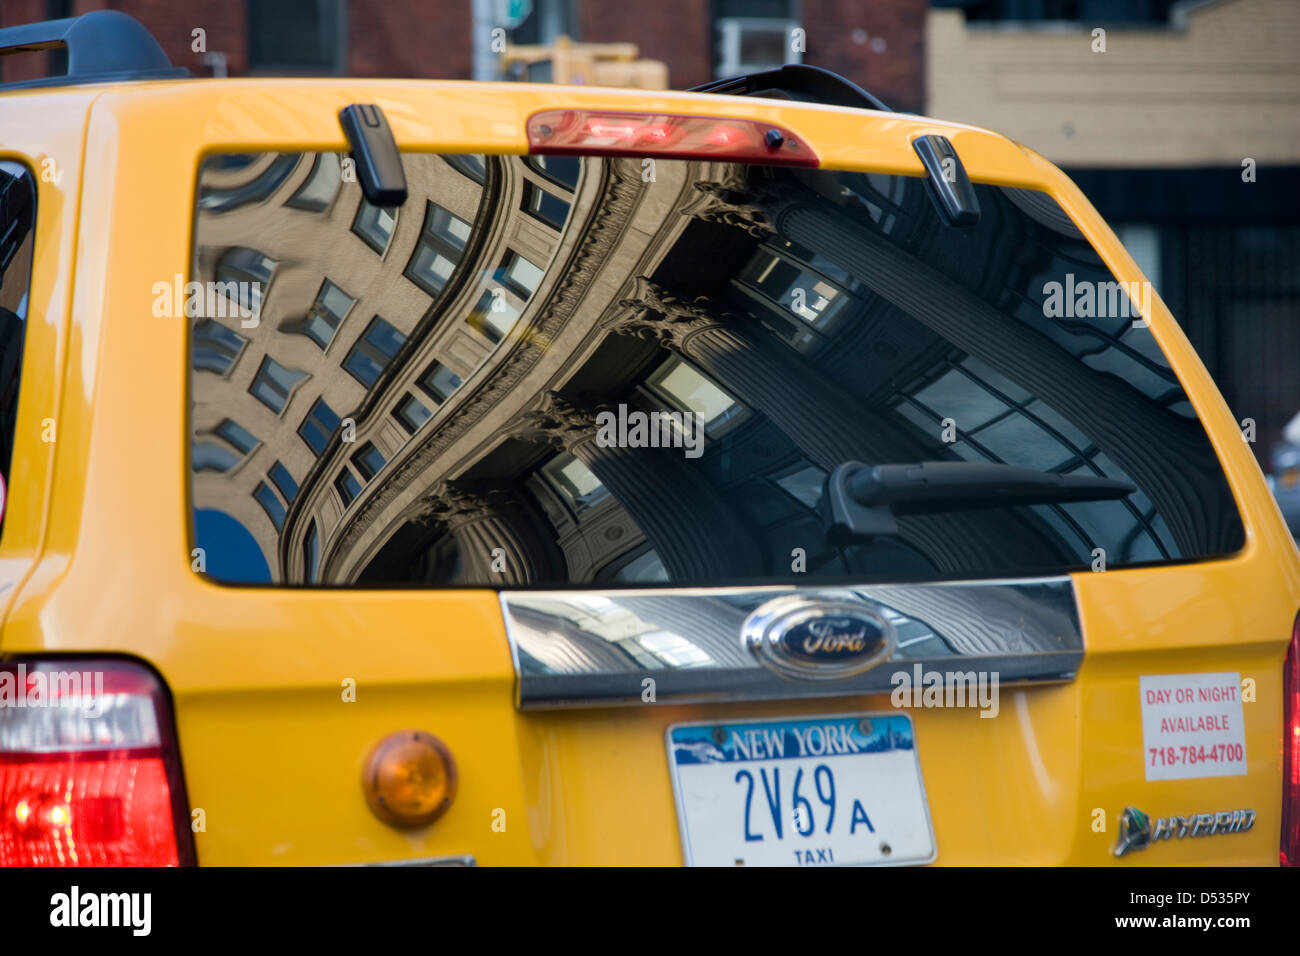 Building facade with Corinthian columns reflected in the back windscreen of a yellow cab, New York - Stock Image